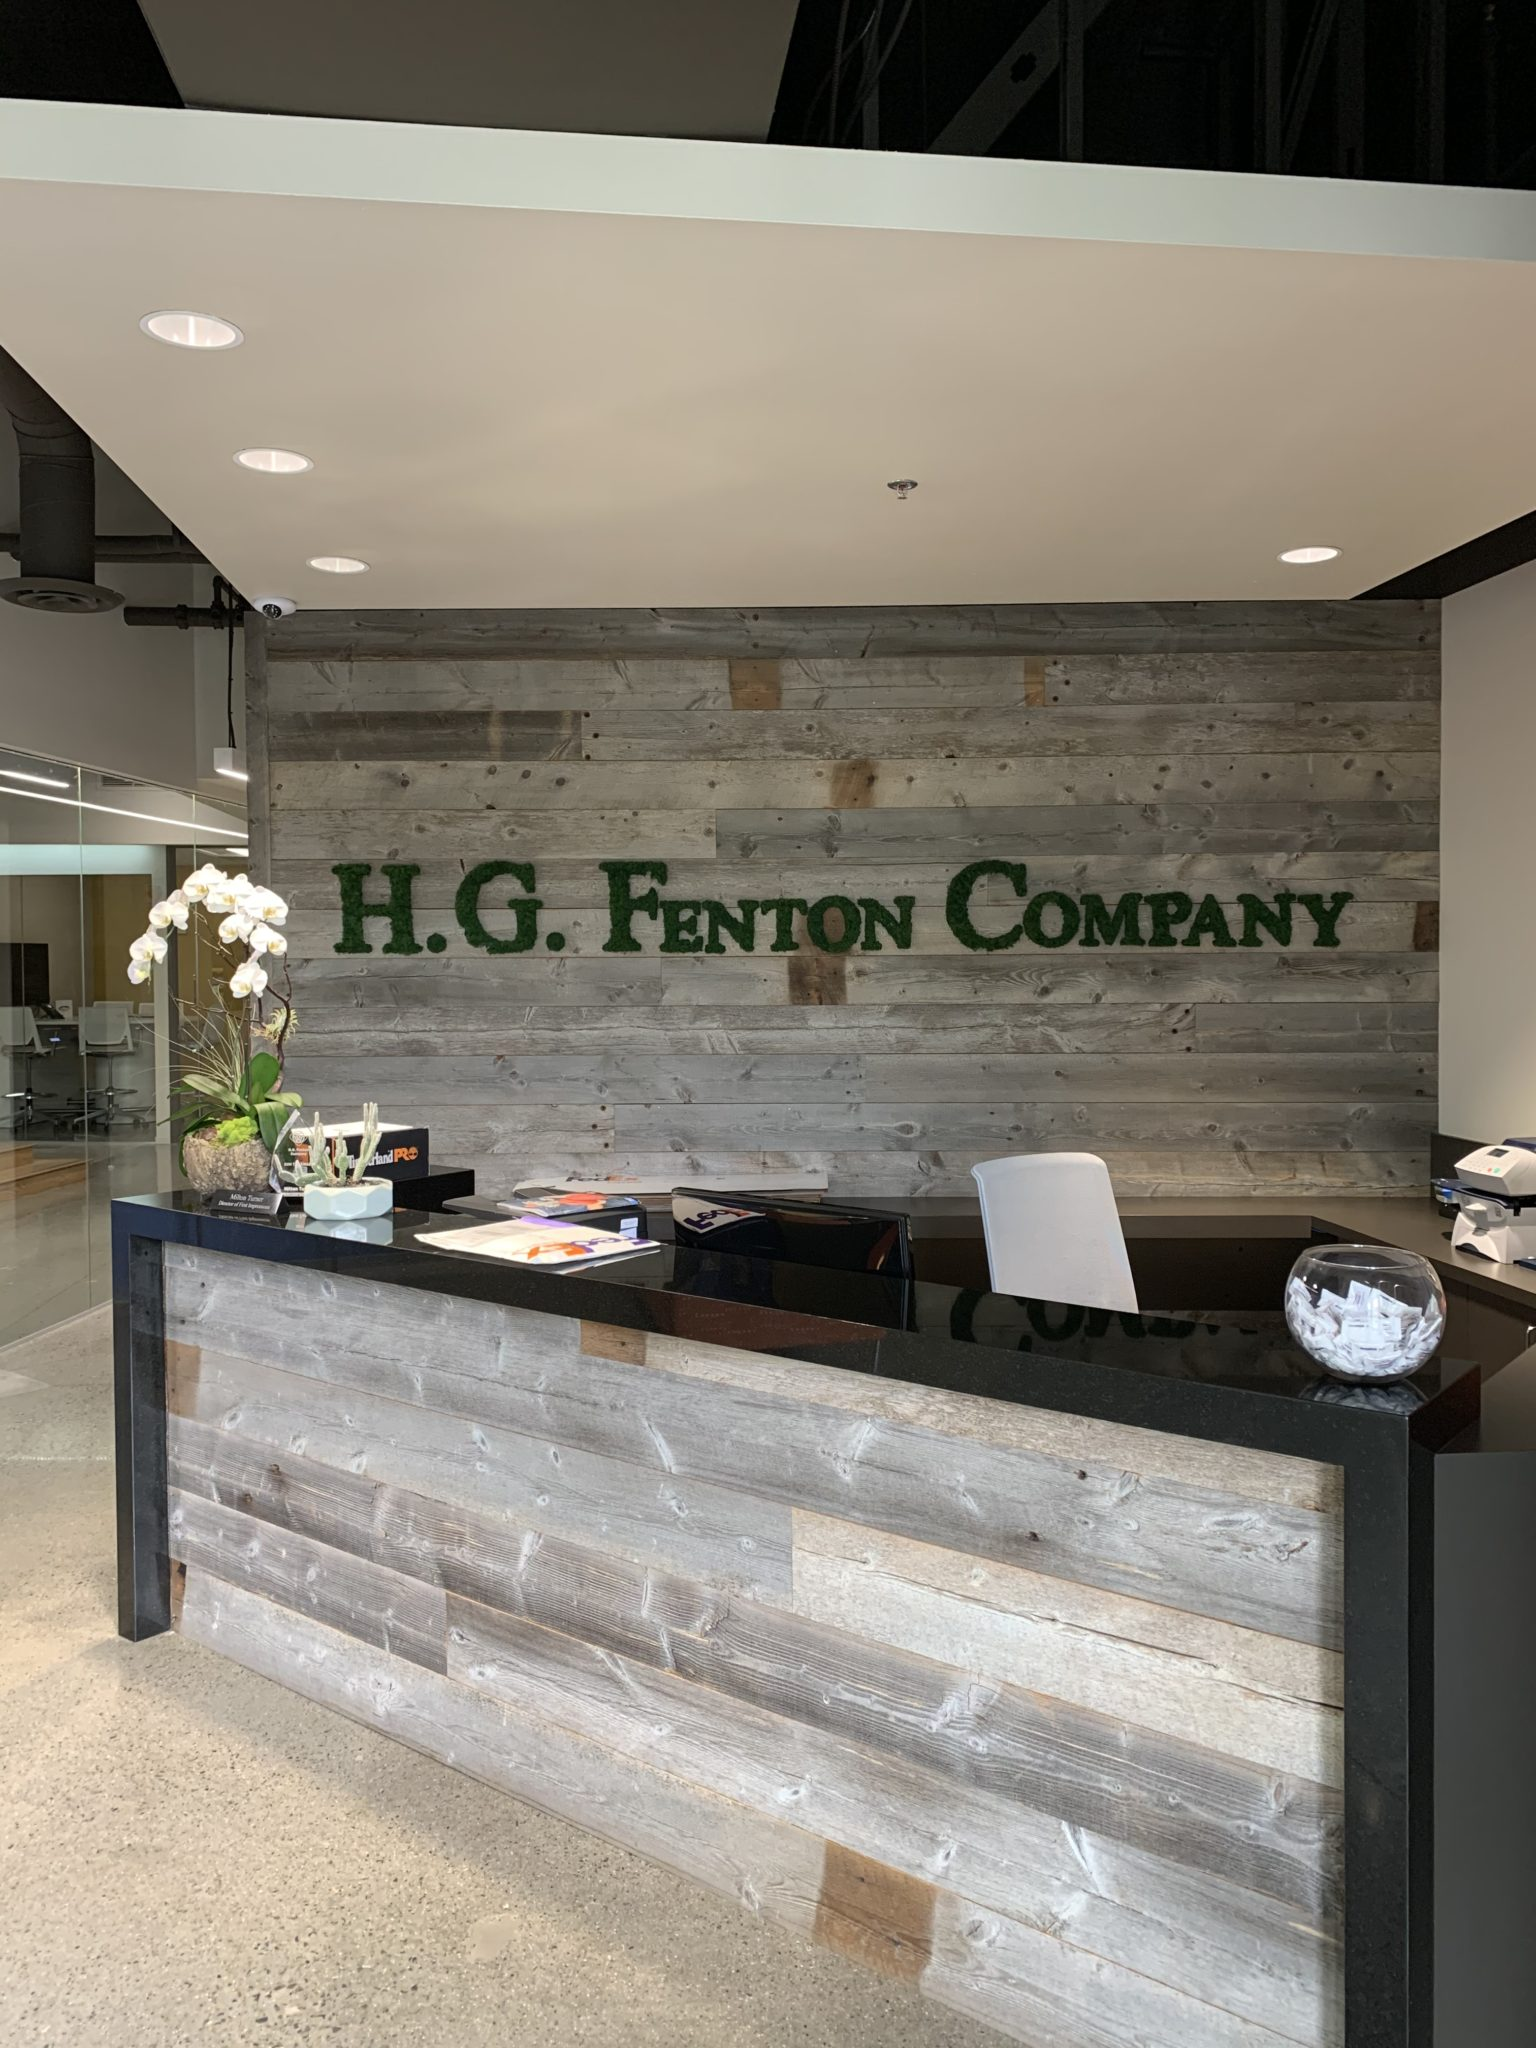 Meditative Vibes, Fit City Adventures, Mindful Mob Event at H.G. Fenton Company